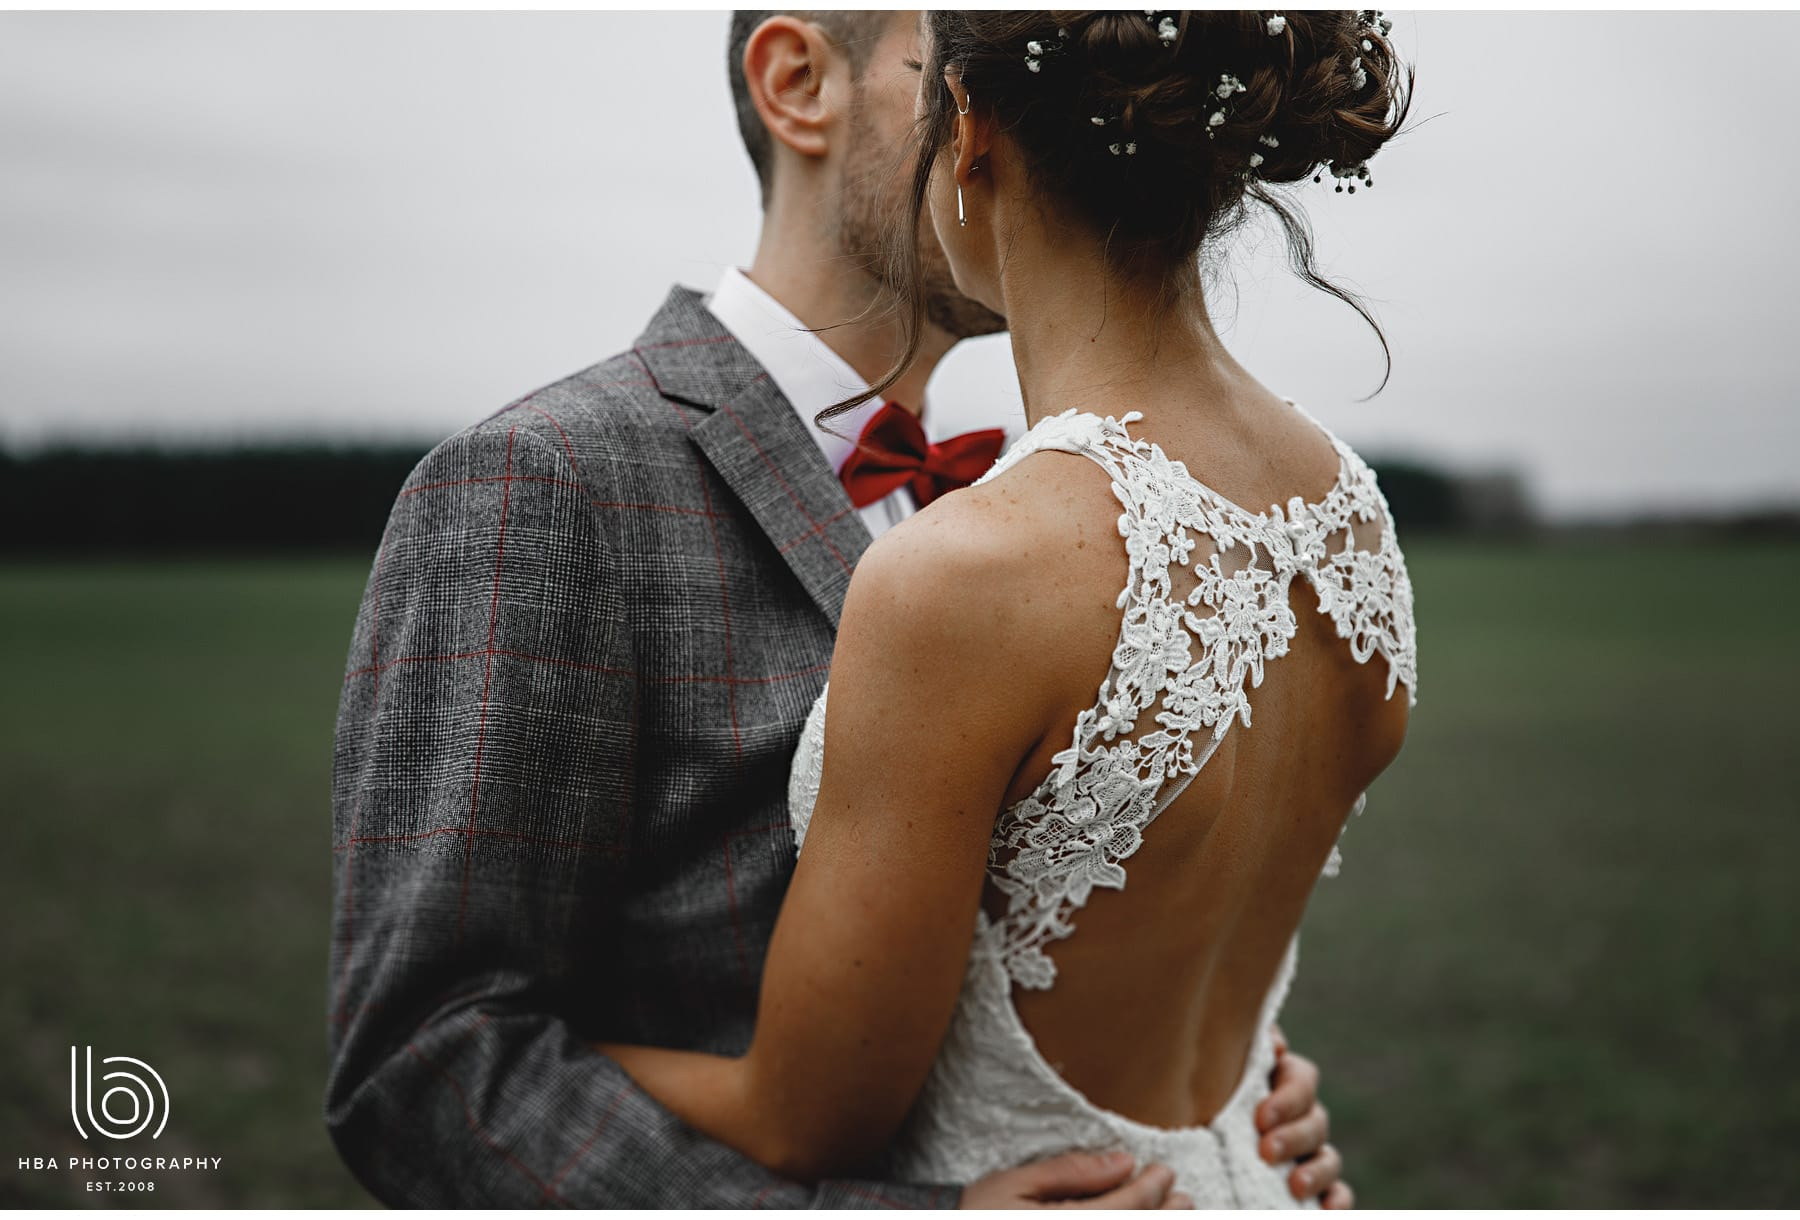 the back of the bride's dress